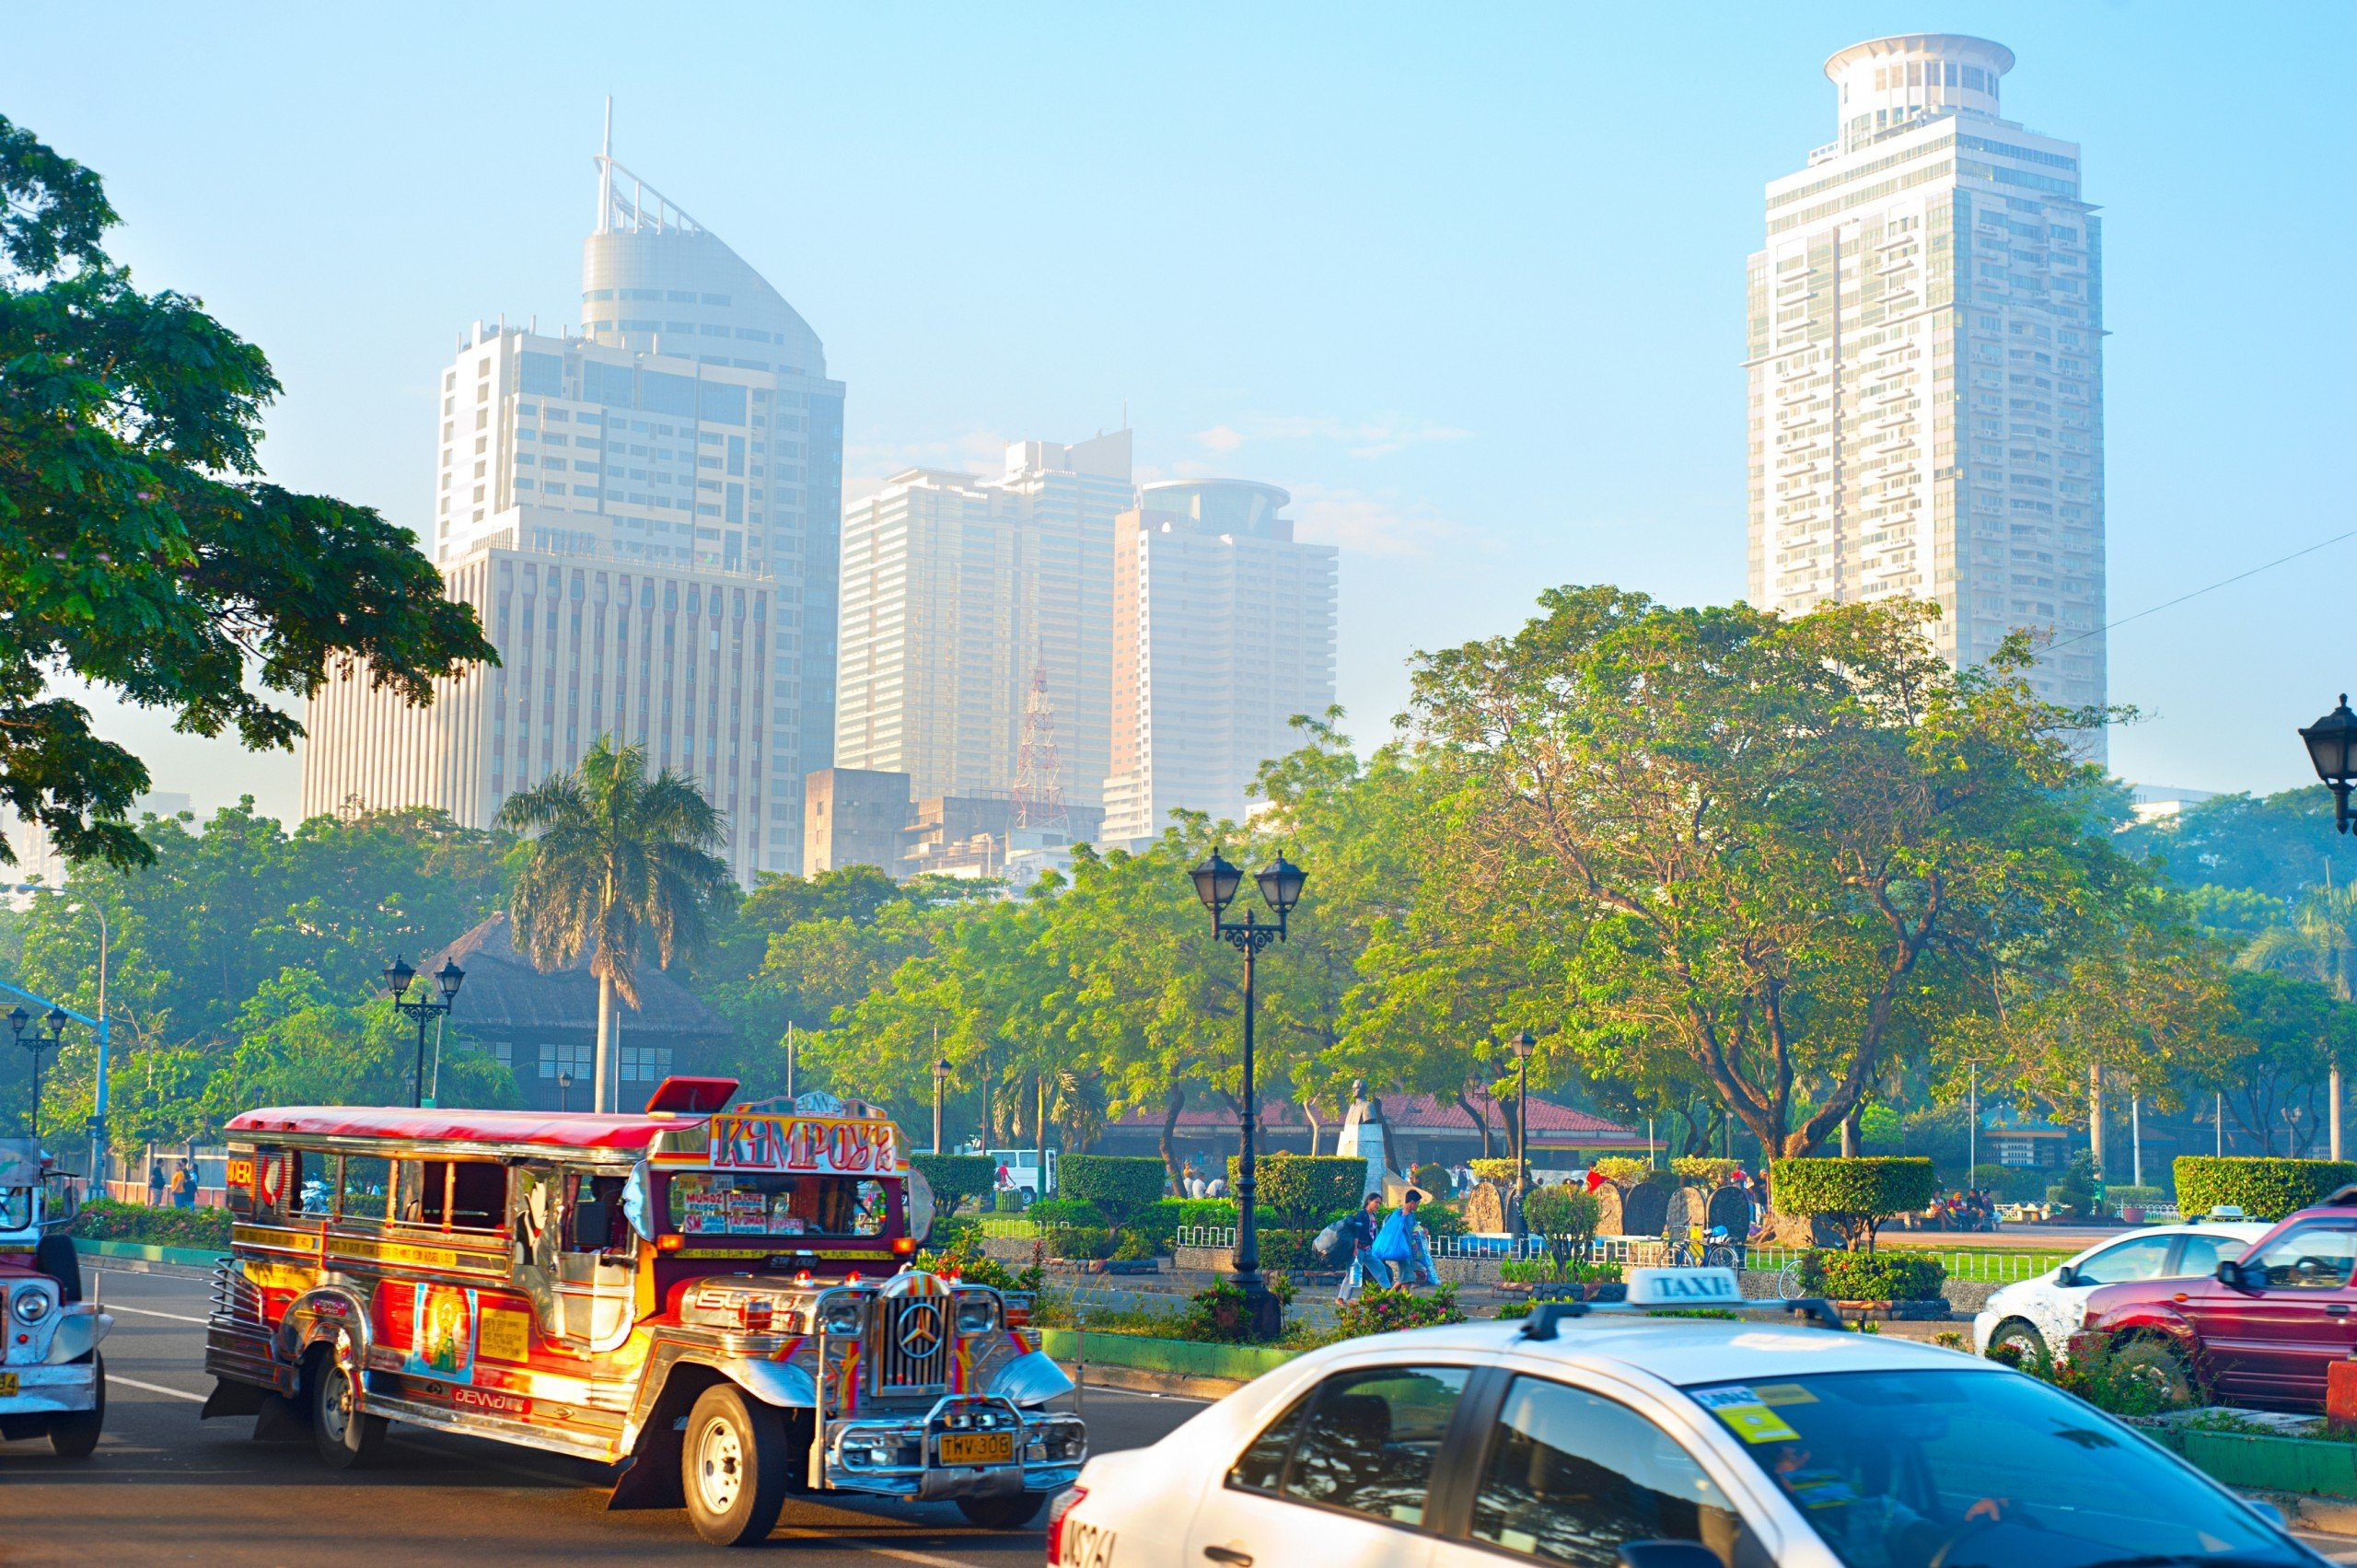 Metro Manila picture with traffic and skyscrapers in background